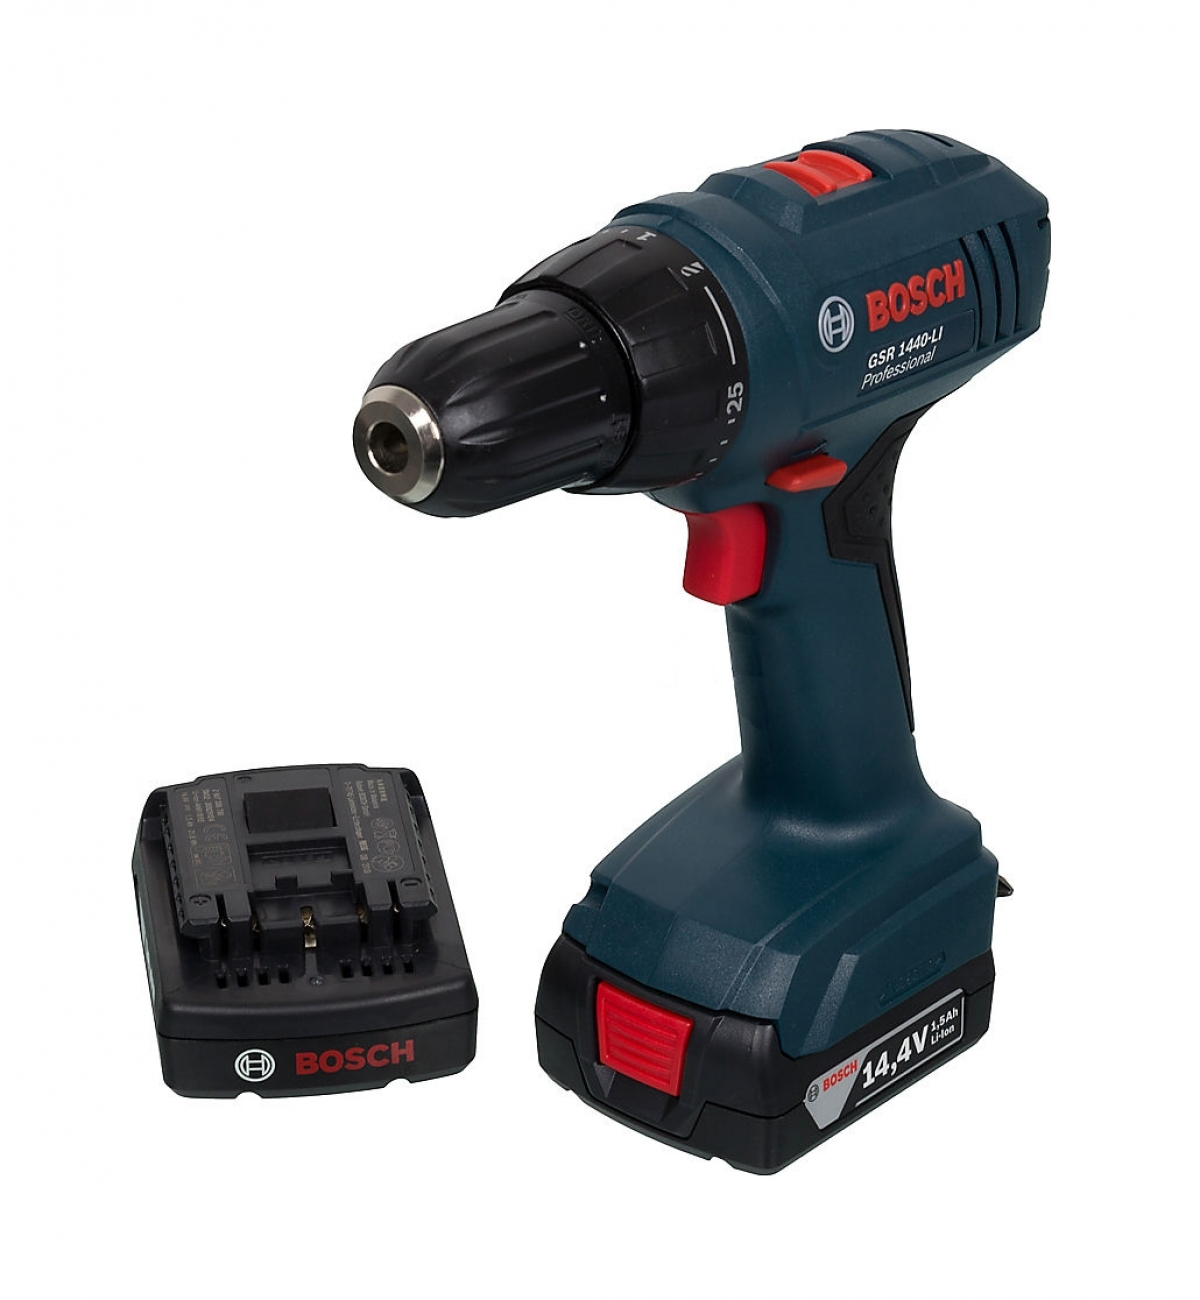 bosch gsr 14 4v cordless drill driver my power tools. Black Bedroom Furniture Sets. Home Design Ideas